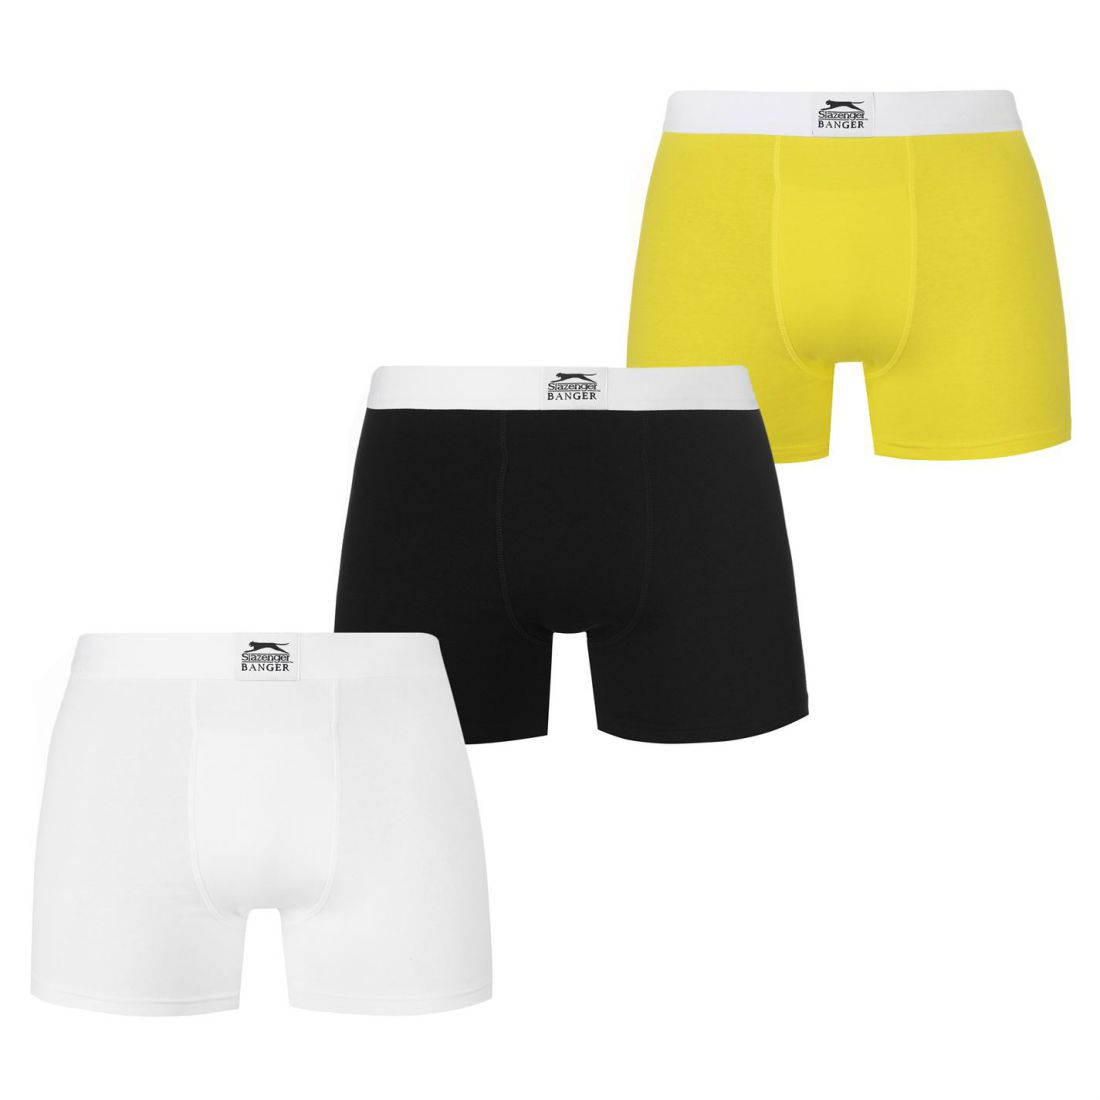 27659e4350e Image is loading Mens-Slazenger-Banger-Boxer-Shorts-Underwear-New